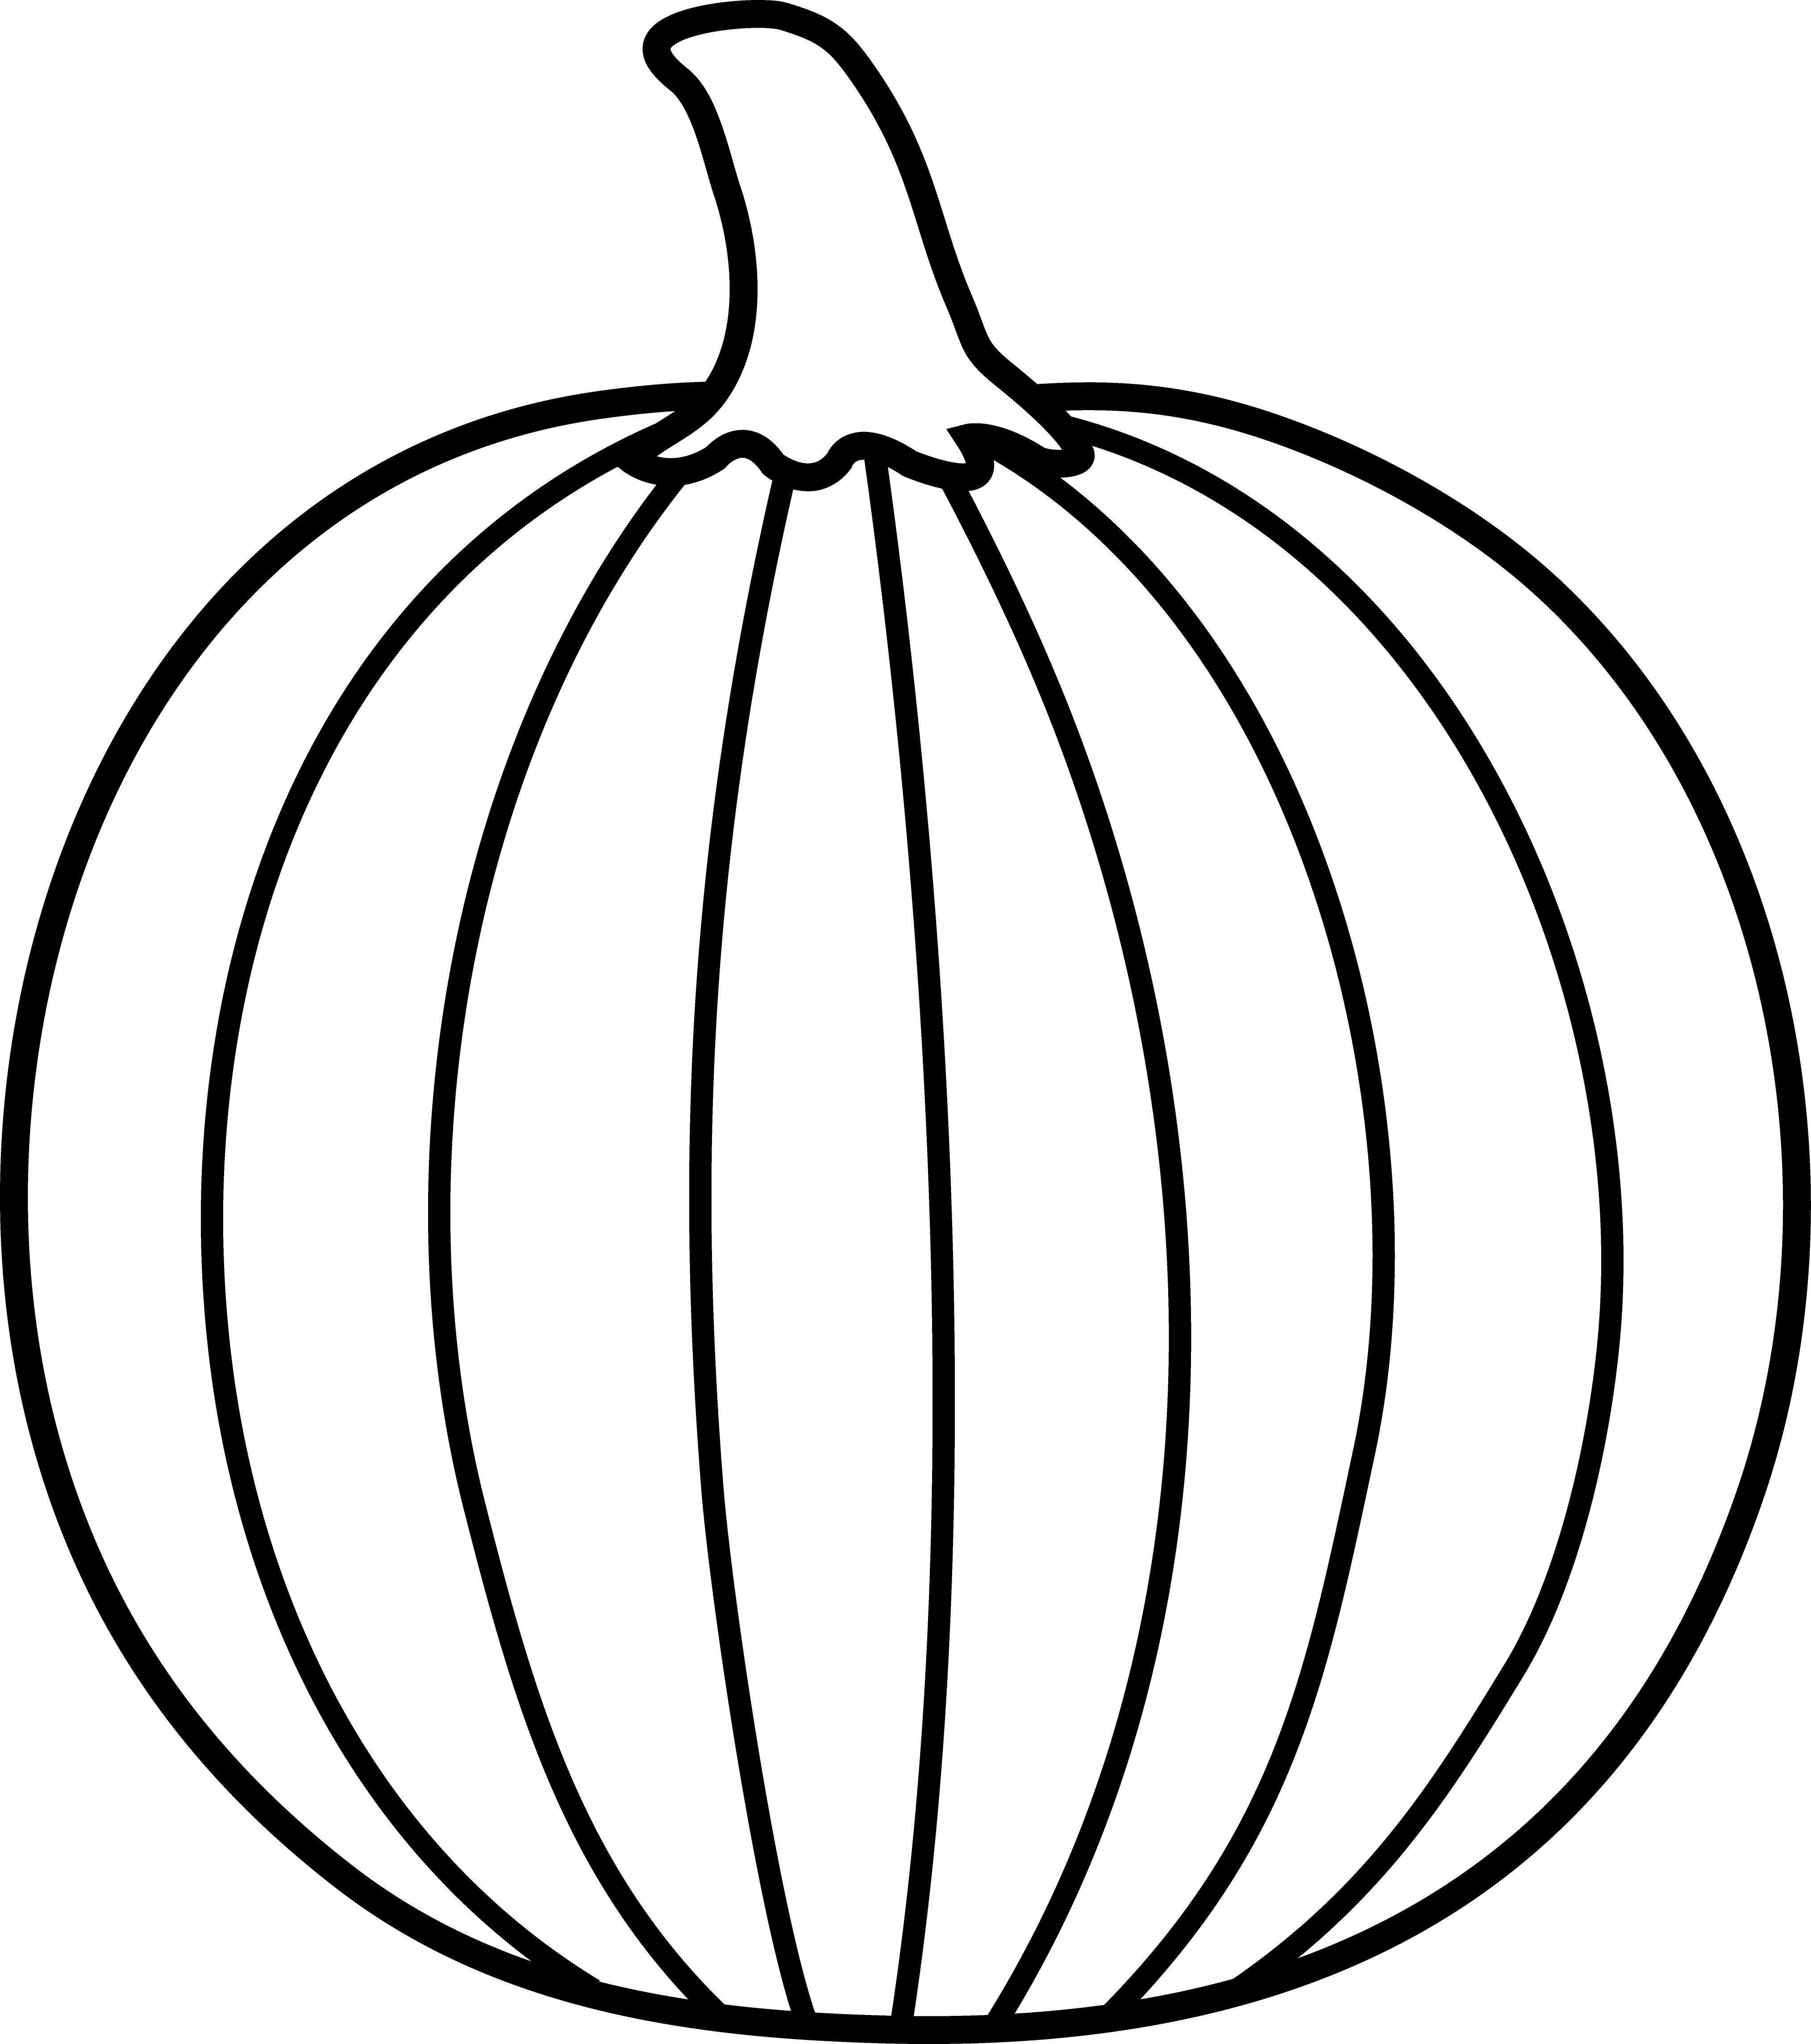 Pumpkin  black and white pumpkin outline clipart black and white free 3